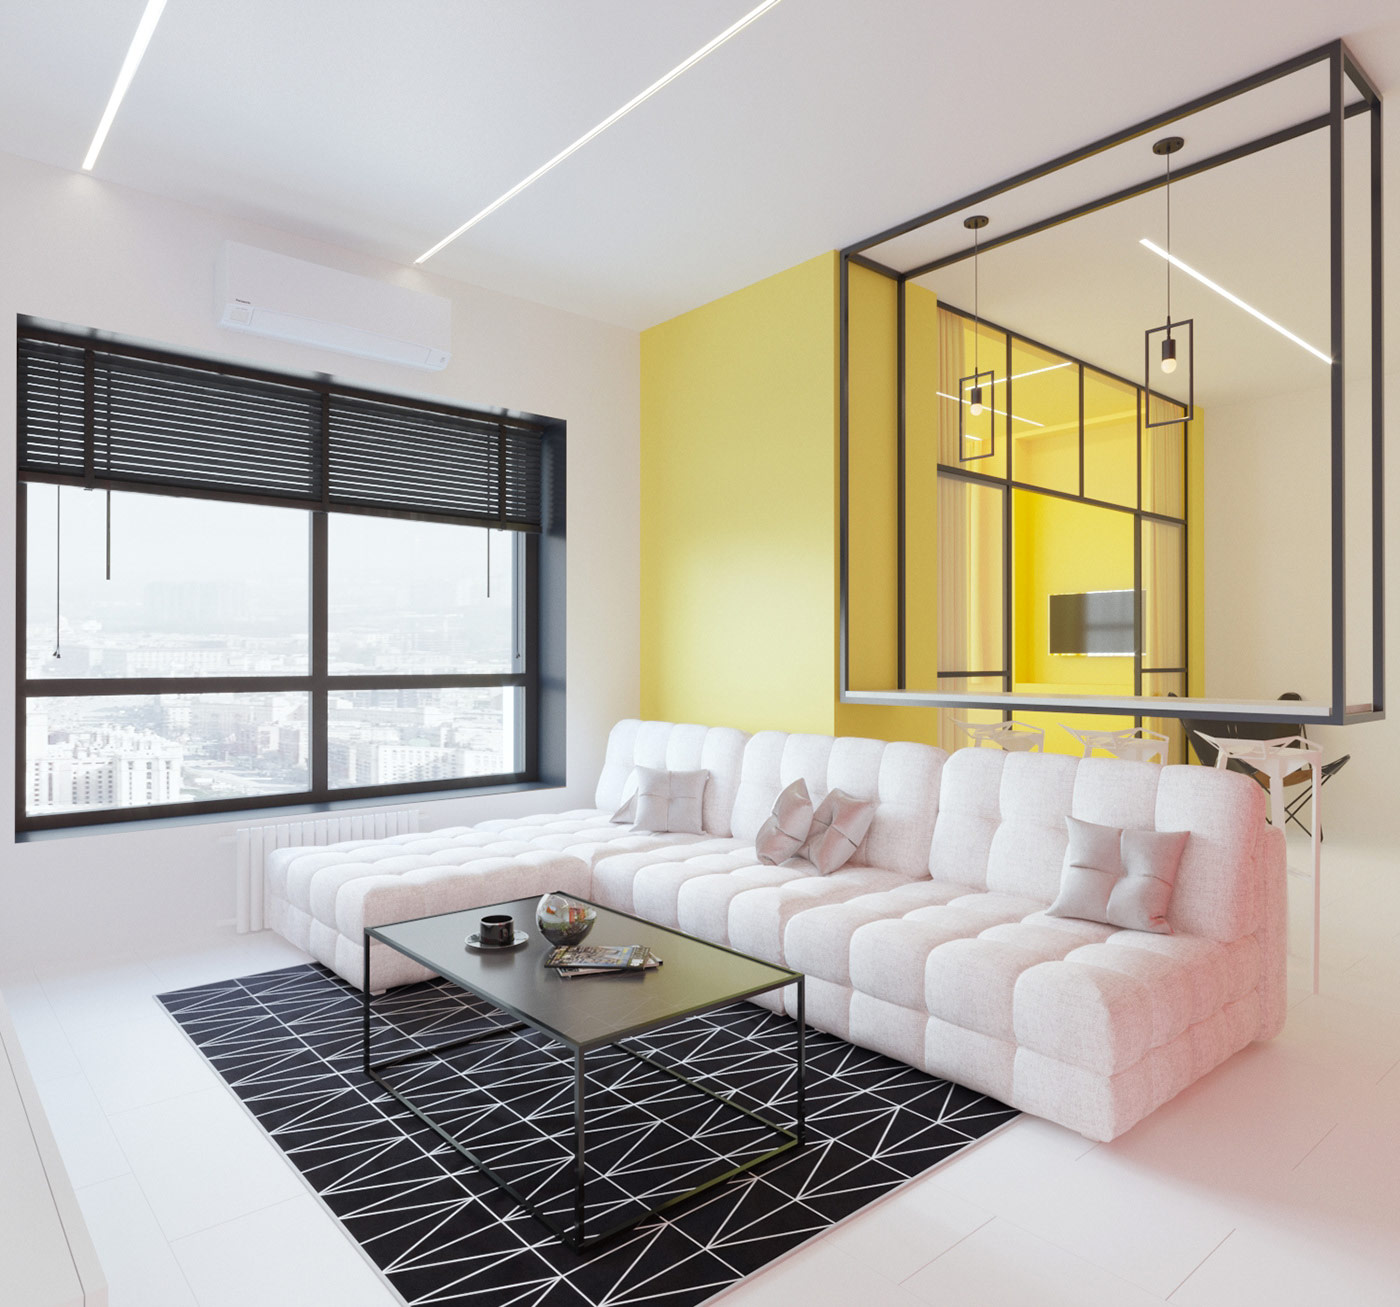 Mondrian Inspired Interior With Modern Geometric Accents